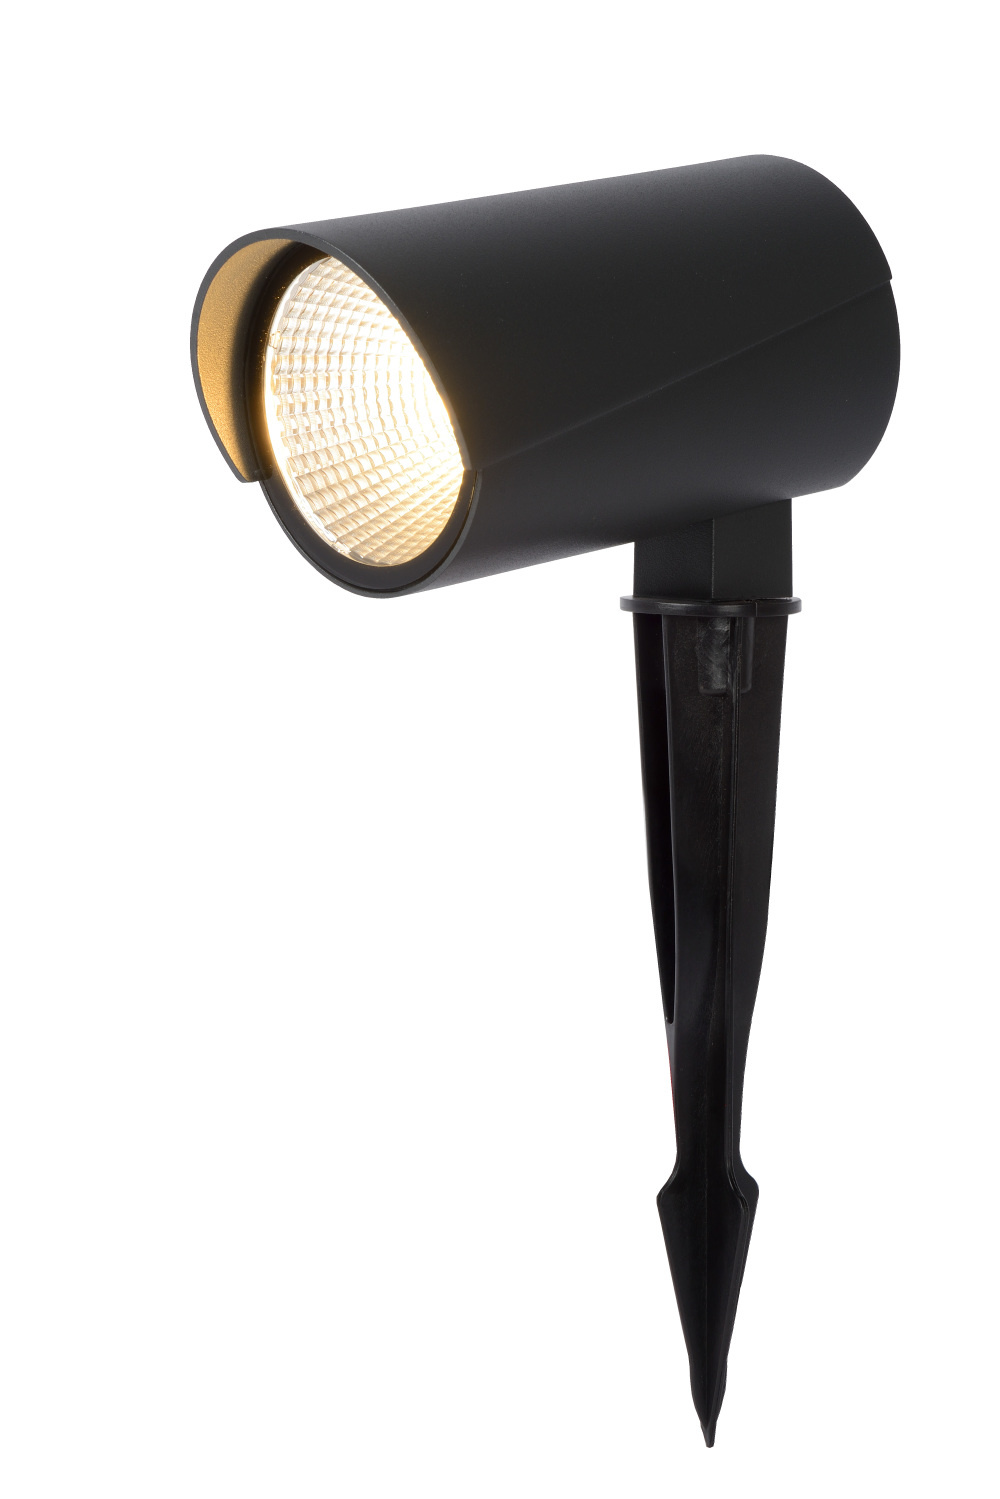 Lucide MANAL Tuinspot/Grondspie LED 12W Antraciet